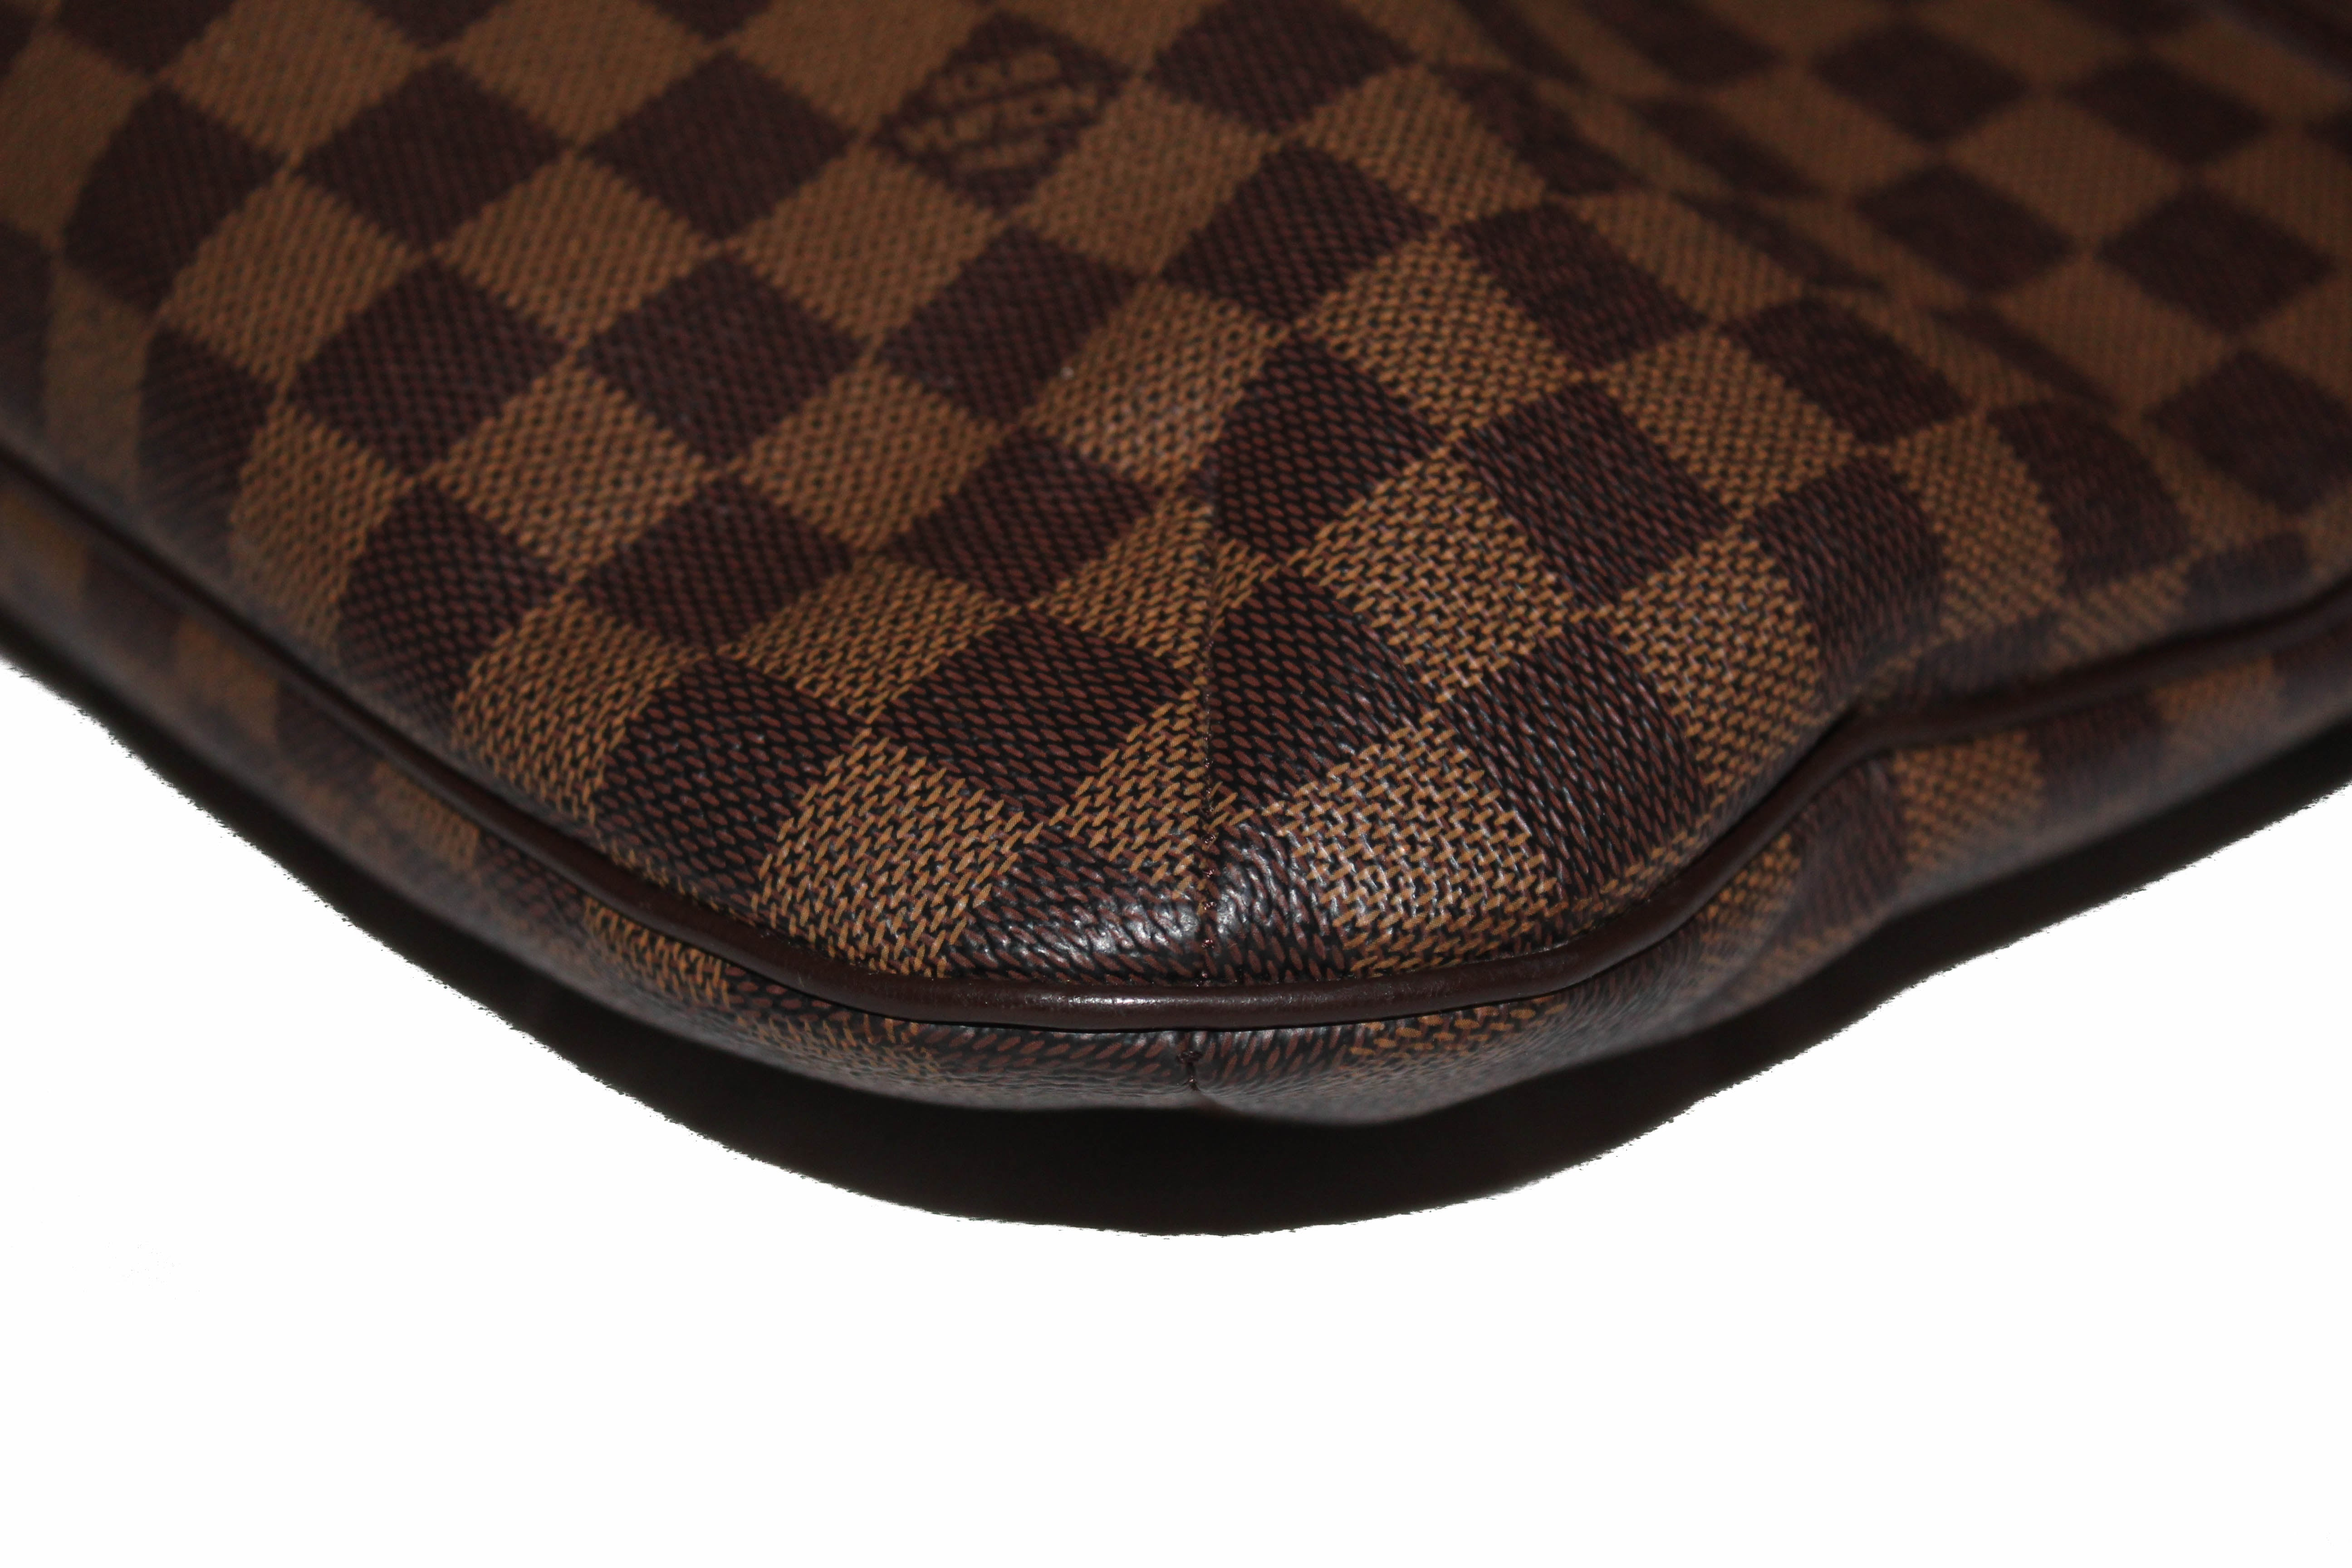 Authentic Louis Vuitton Damier Canvas Bloomsbury PM Messenger Crossbody Bag